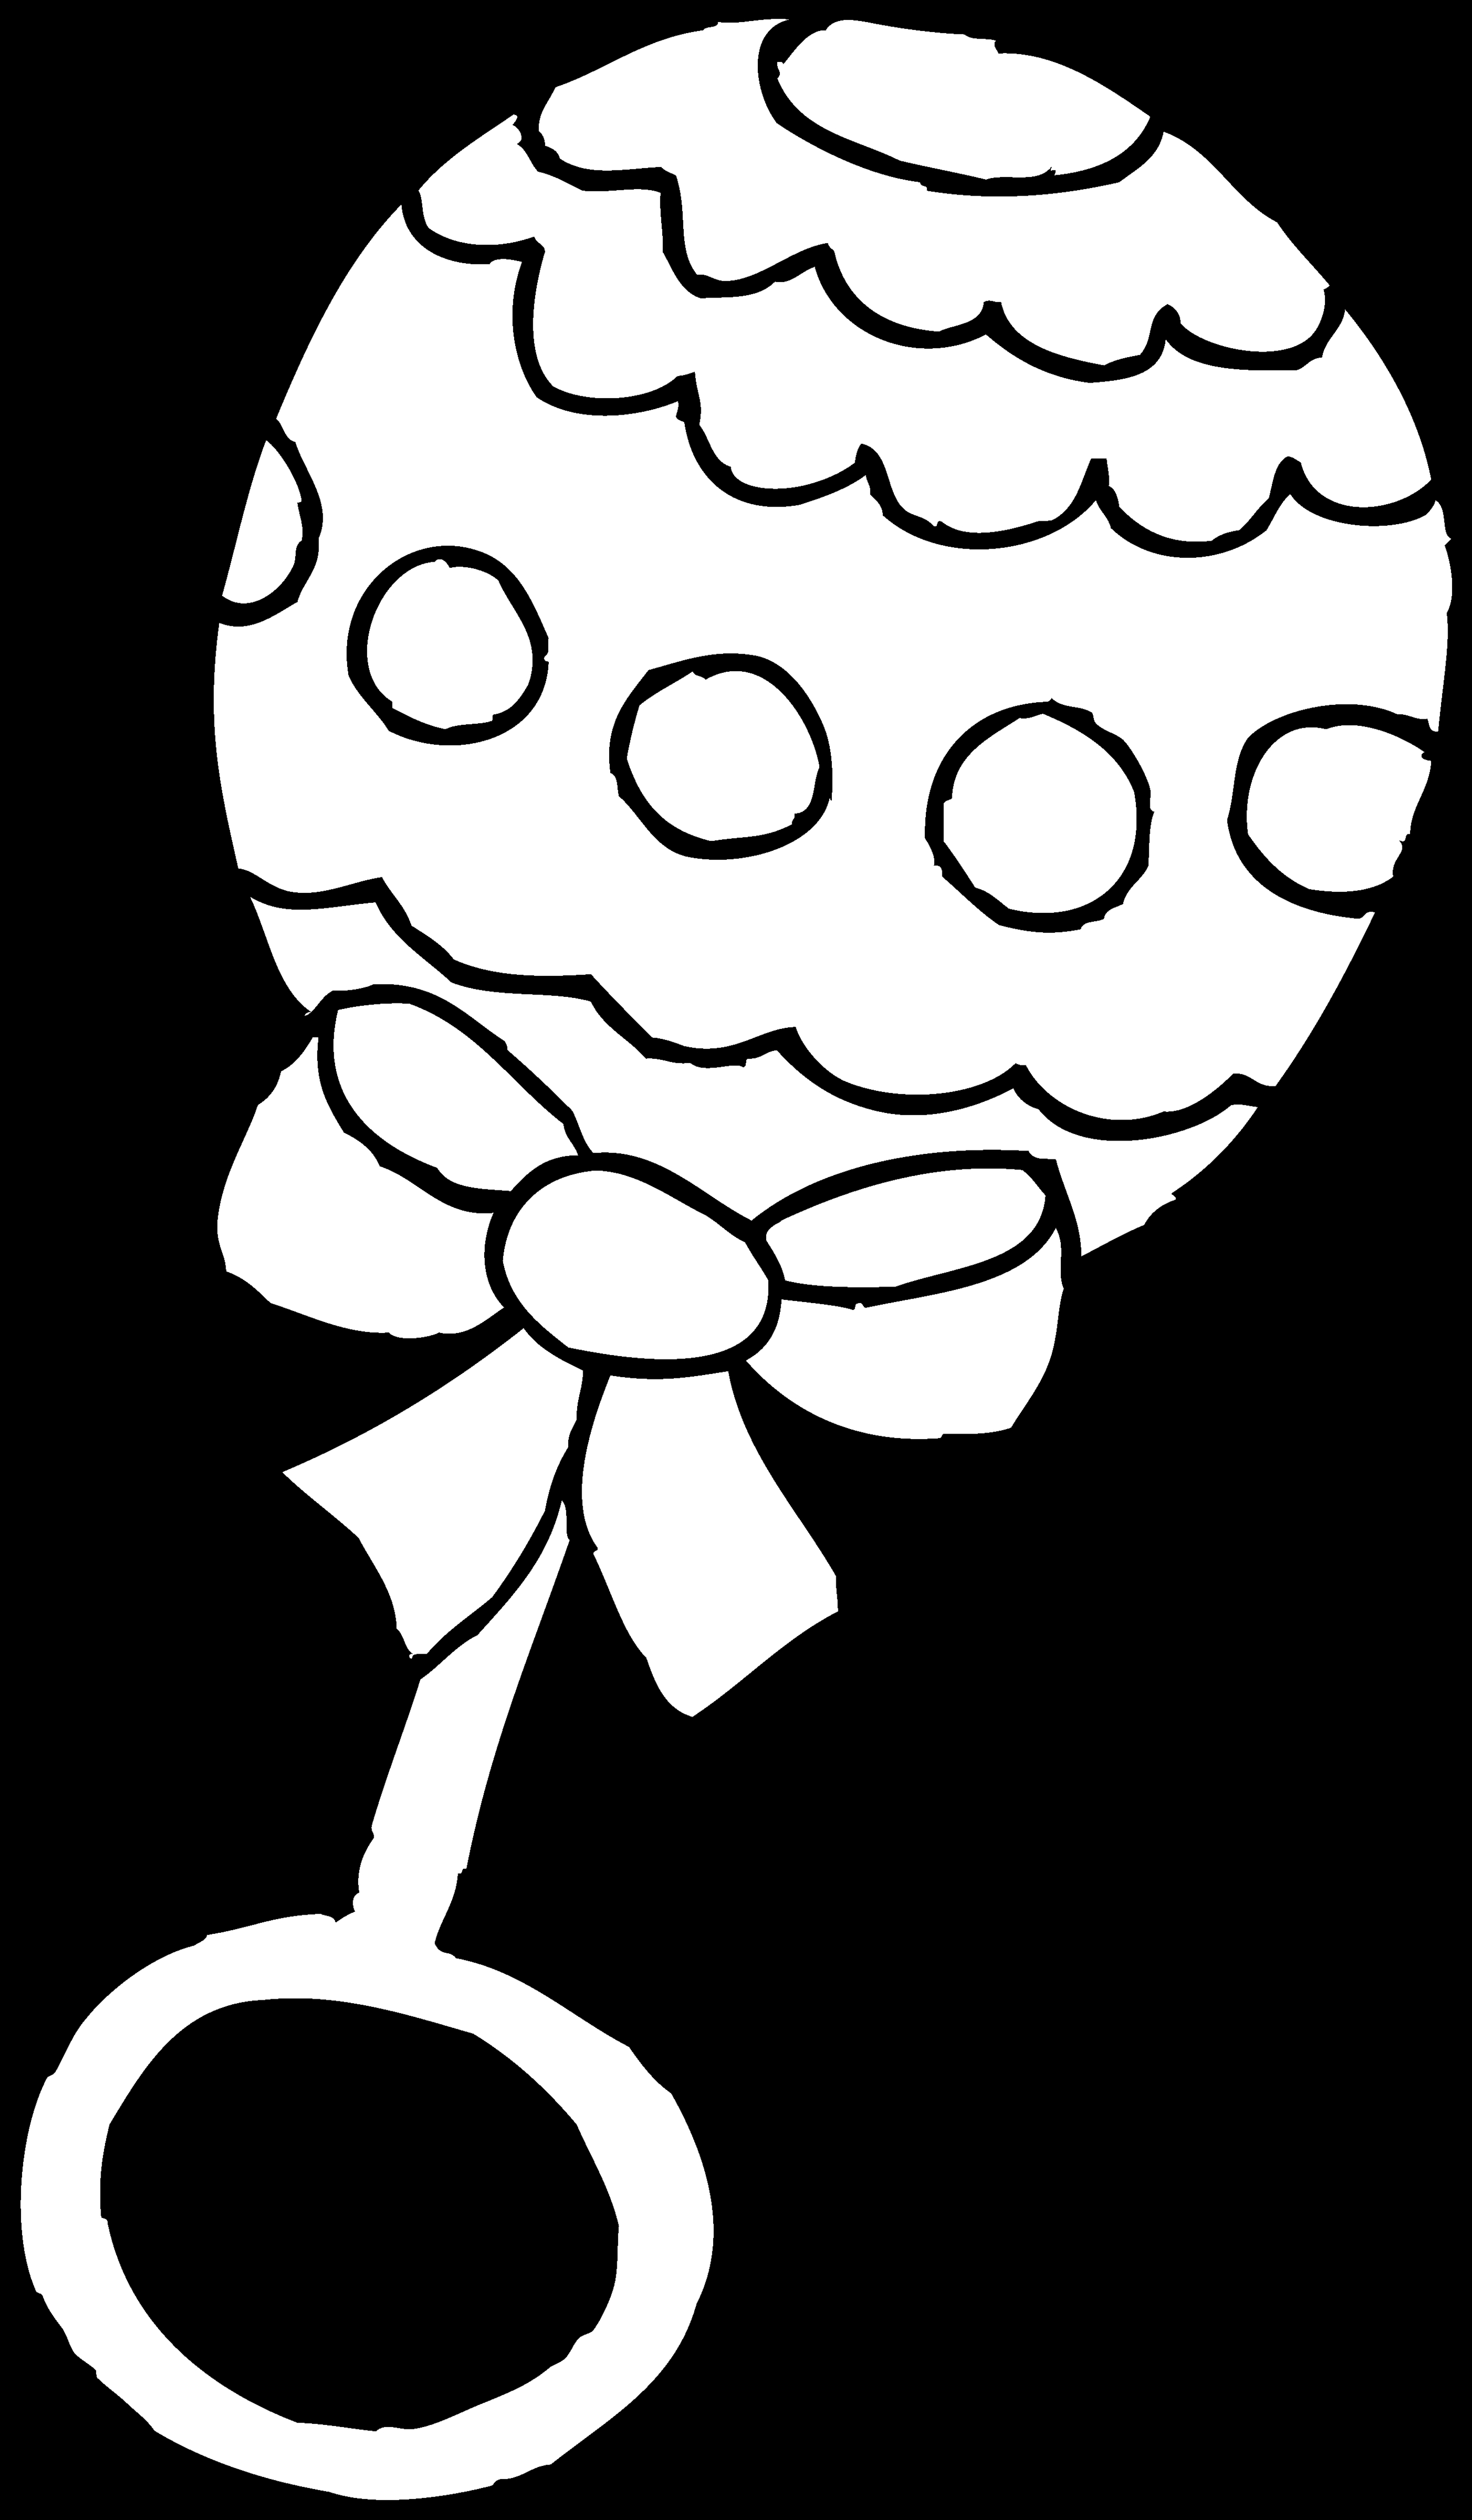 Rattle Coloring Page Collection Of Rattle Clipart Free Download Best Rattle Clipart On